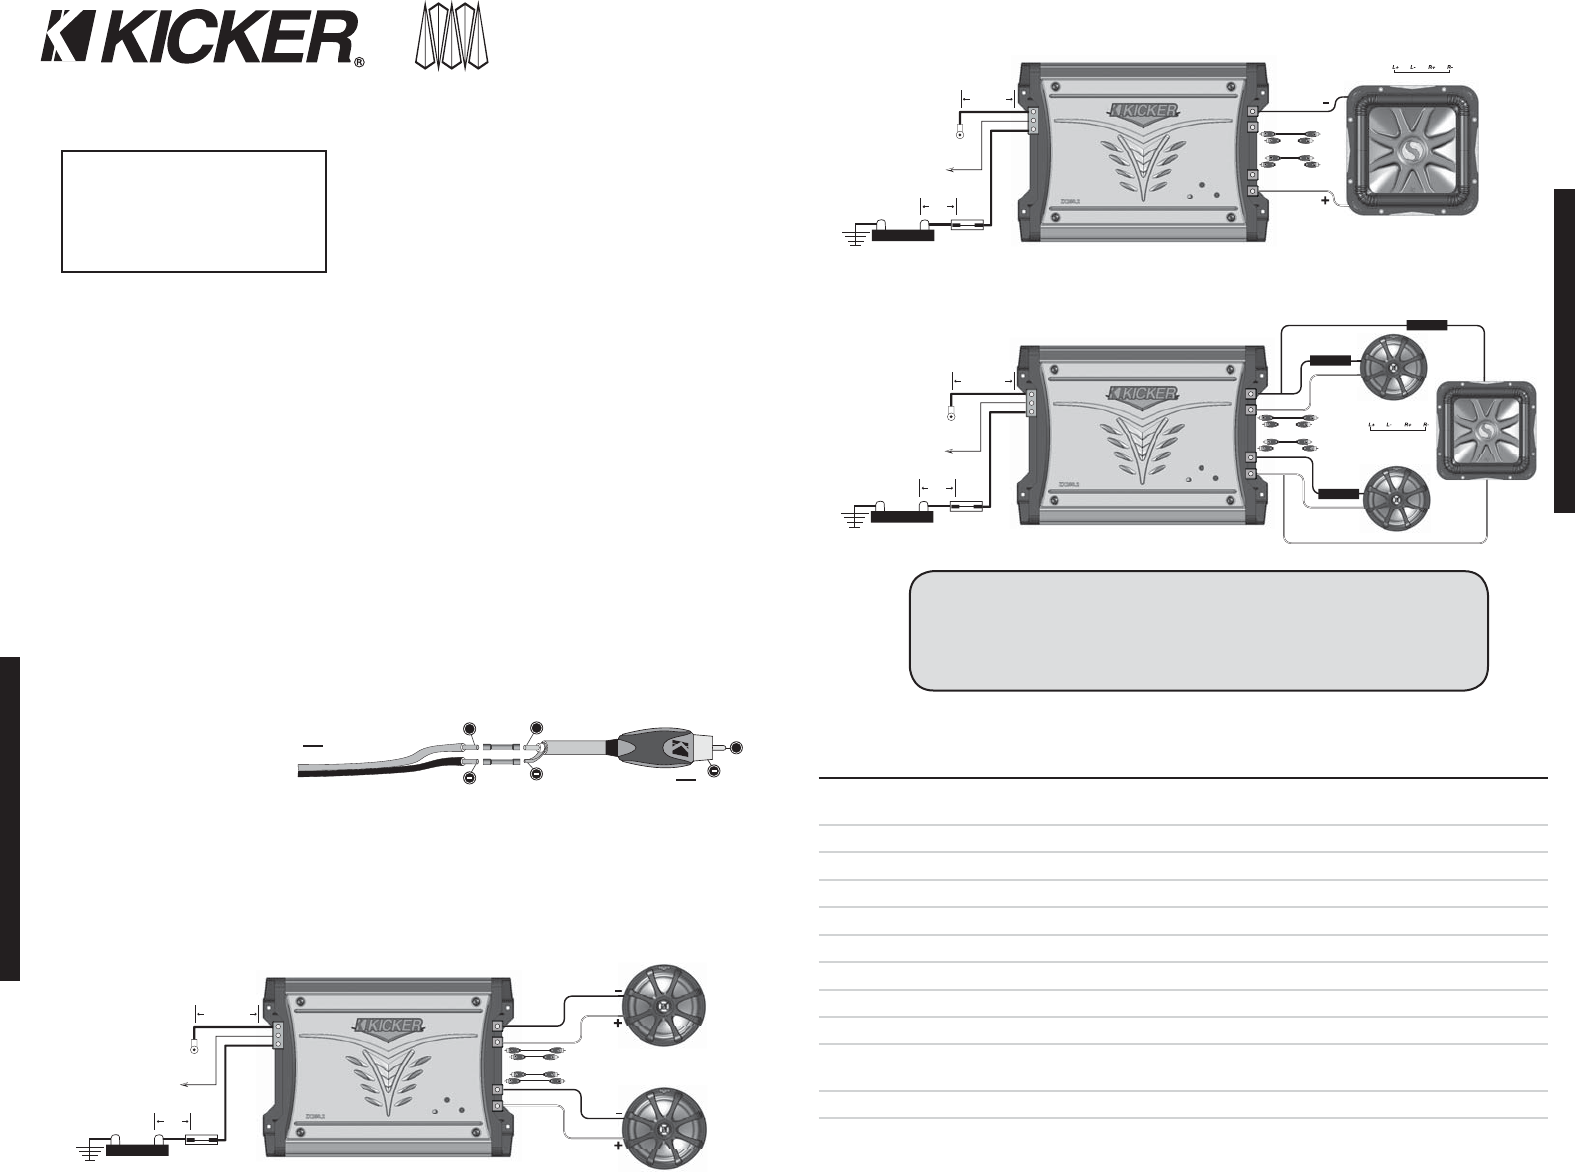 03ca3282 0eaf bb54 355e ea3974394e67 bg2 page 2 of kicker stereo amplifier zx350 2 user guide kicker speaker wiring diagram at reclaimingppi.co